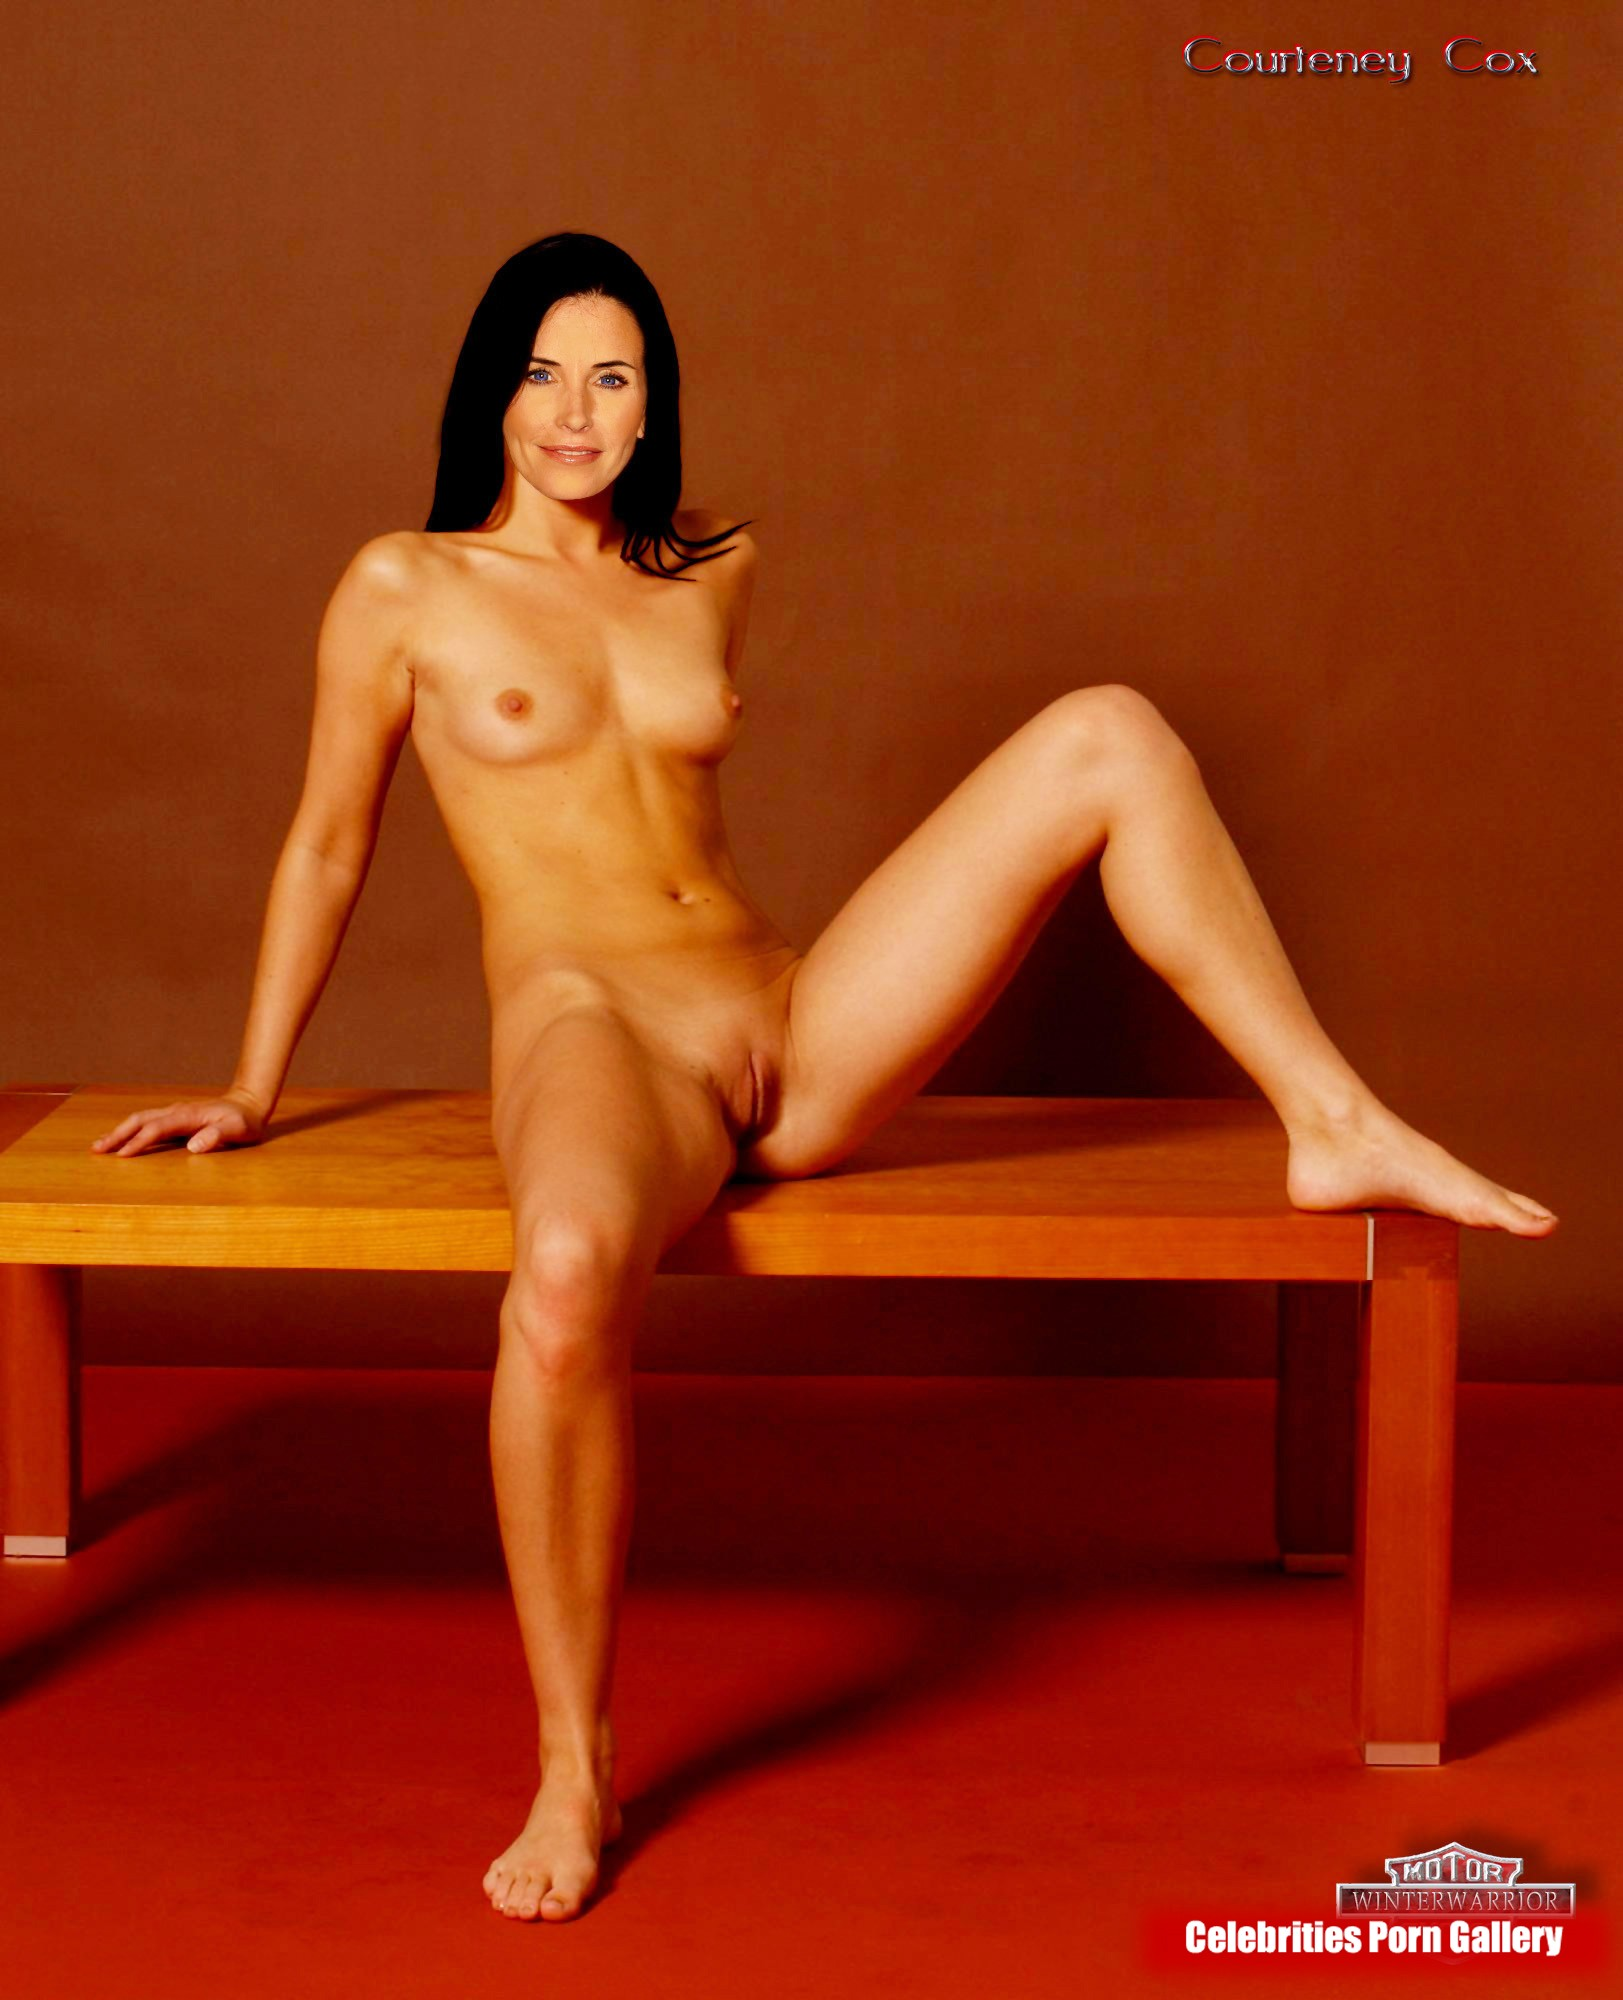 Courtney Cox Fappening